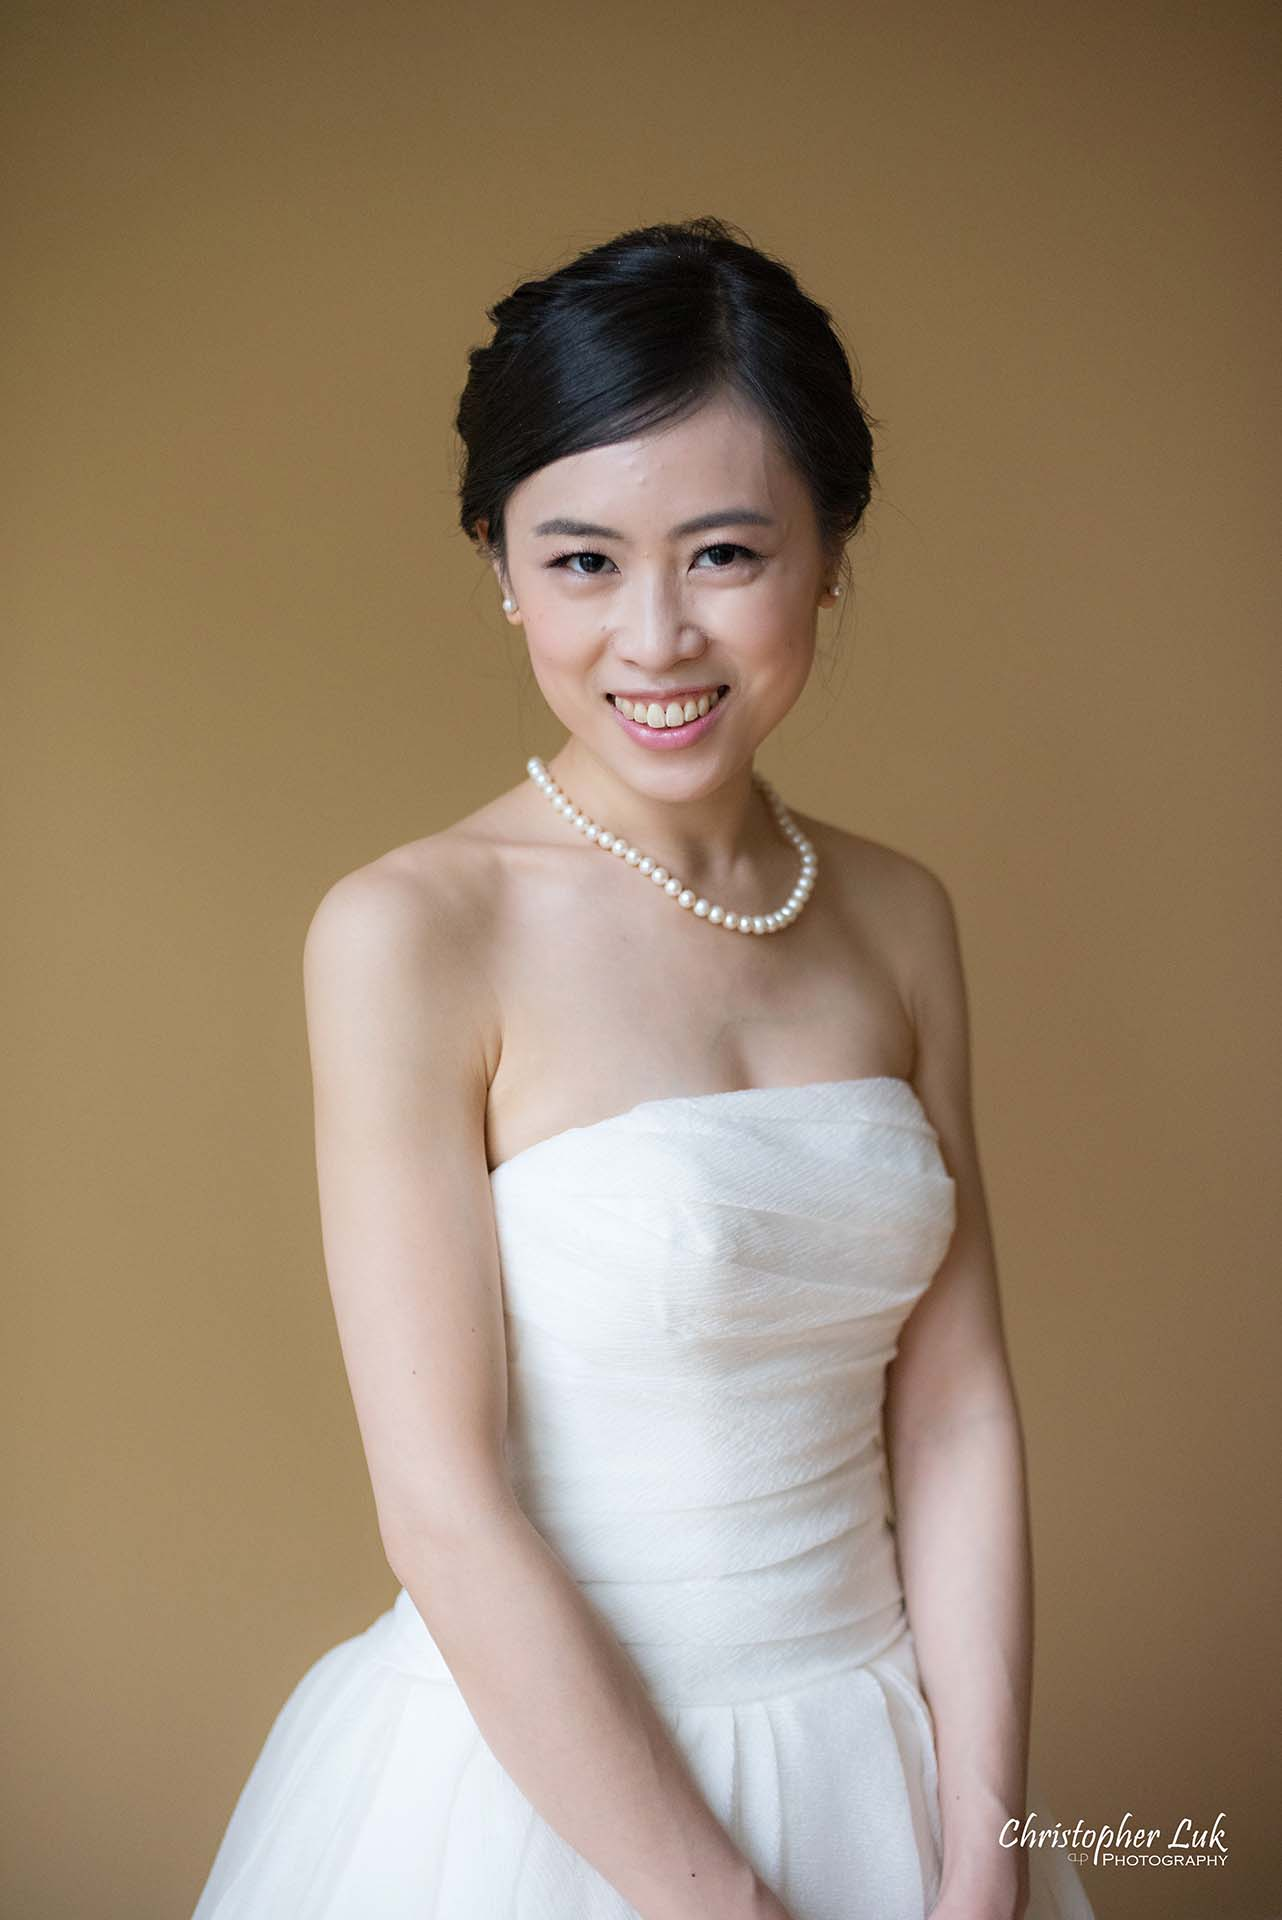 Christopher Luk Toronto Wedding Photographer Bride Getting Ready Preparations Bridal Portrait